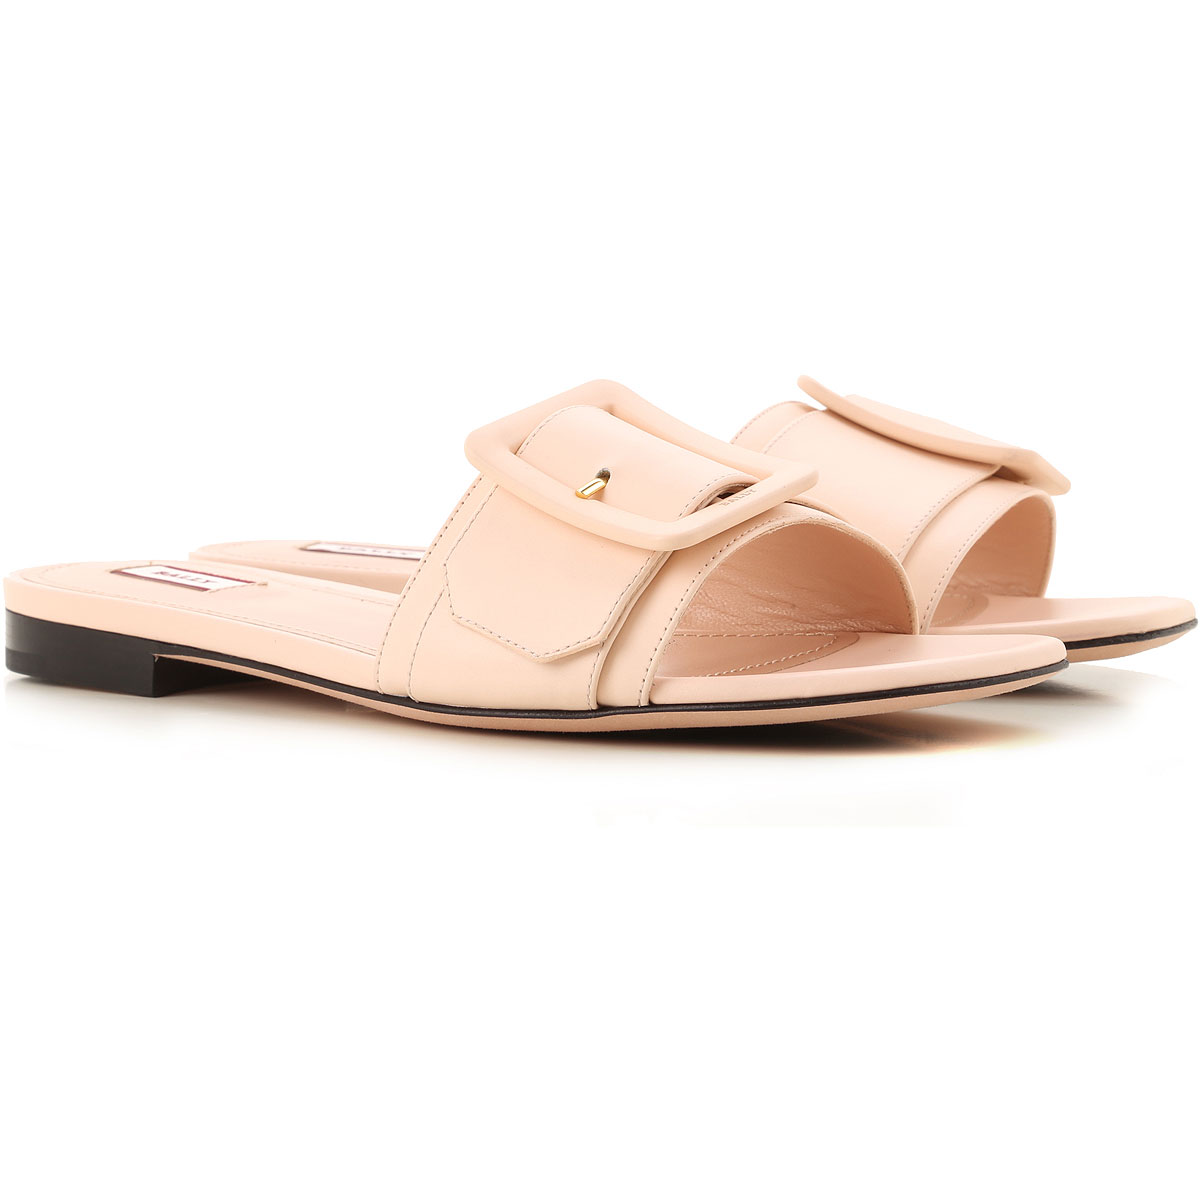 Bally Sandals for Women On Sale, Light Pink, Leather, 2019, 10 6 6.5 7 8 8.5 9